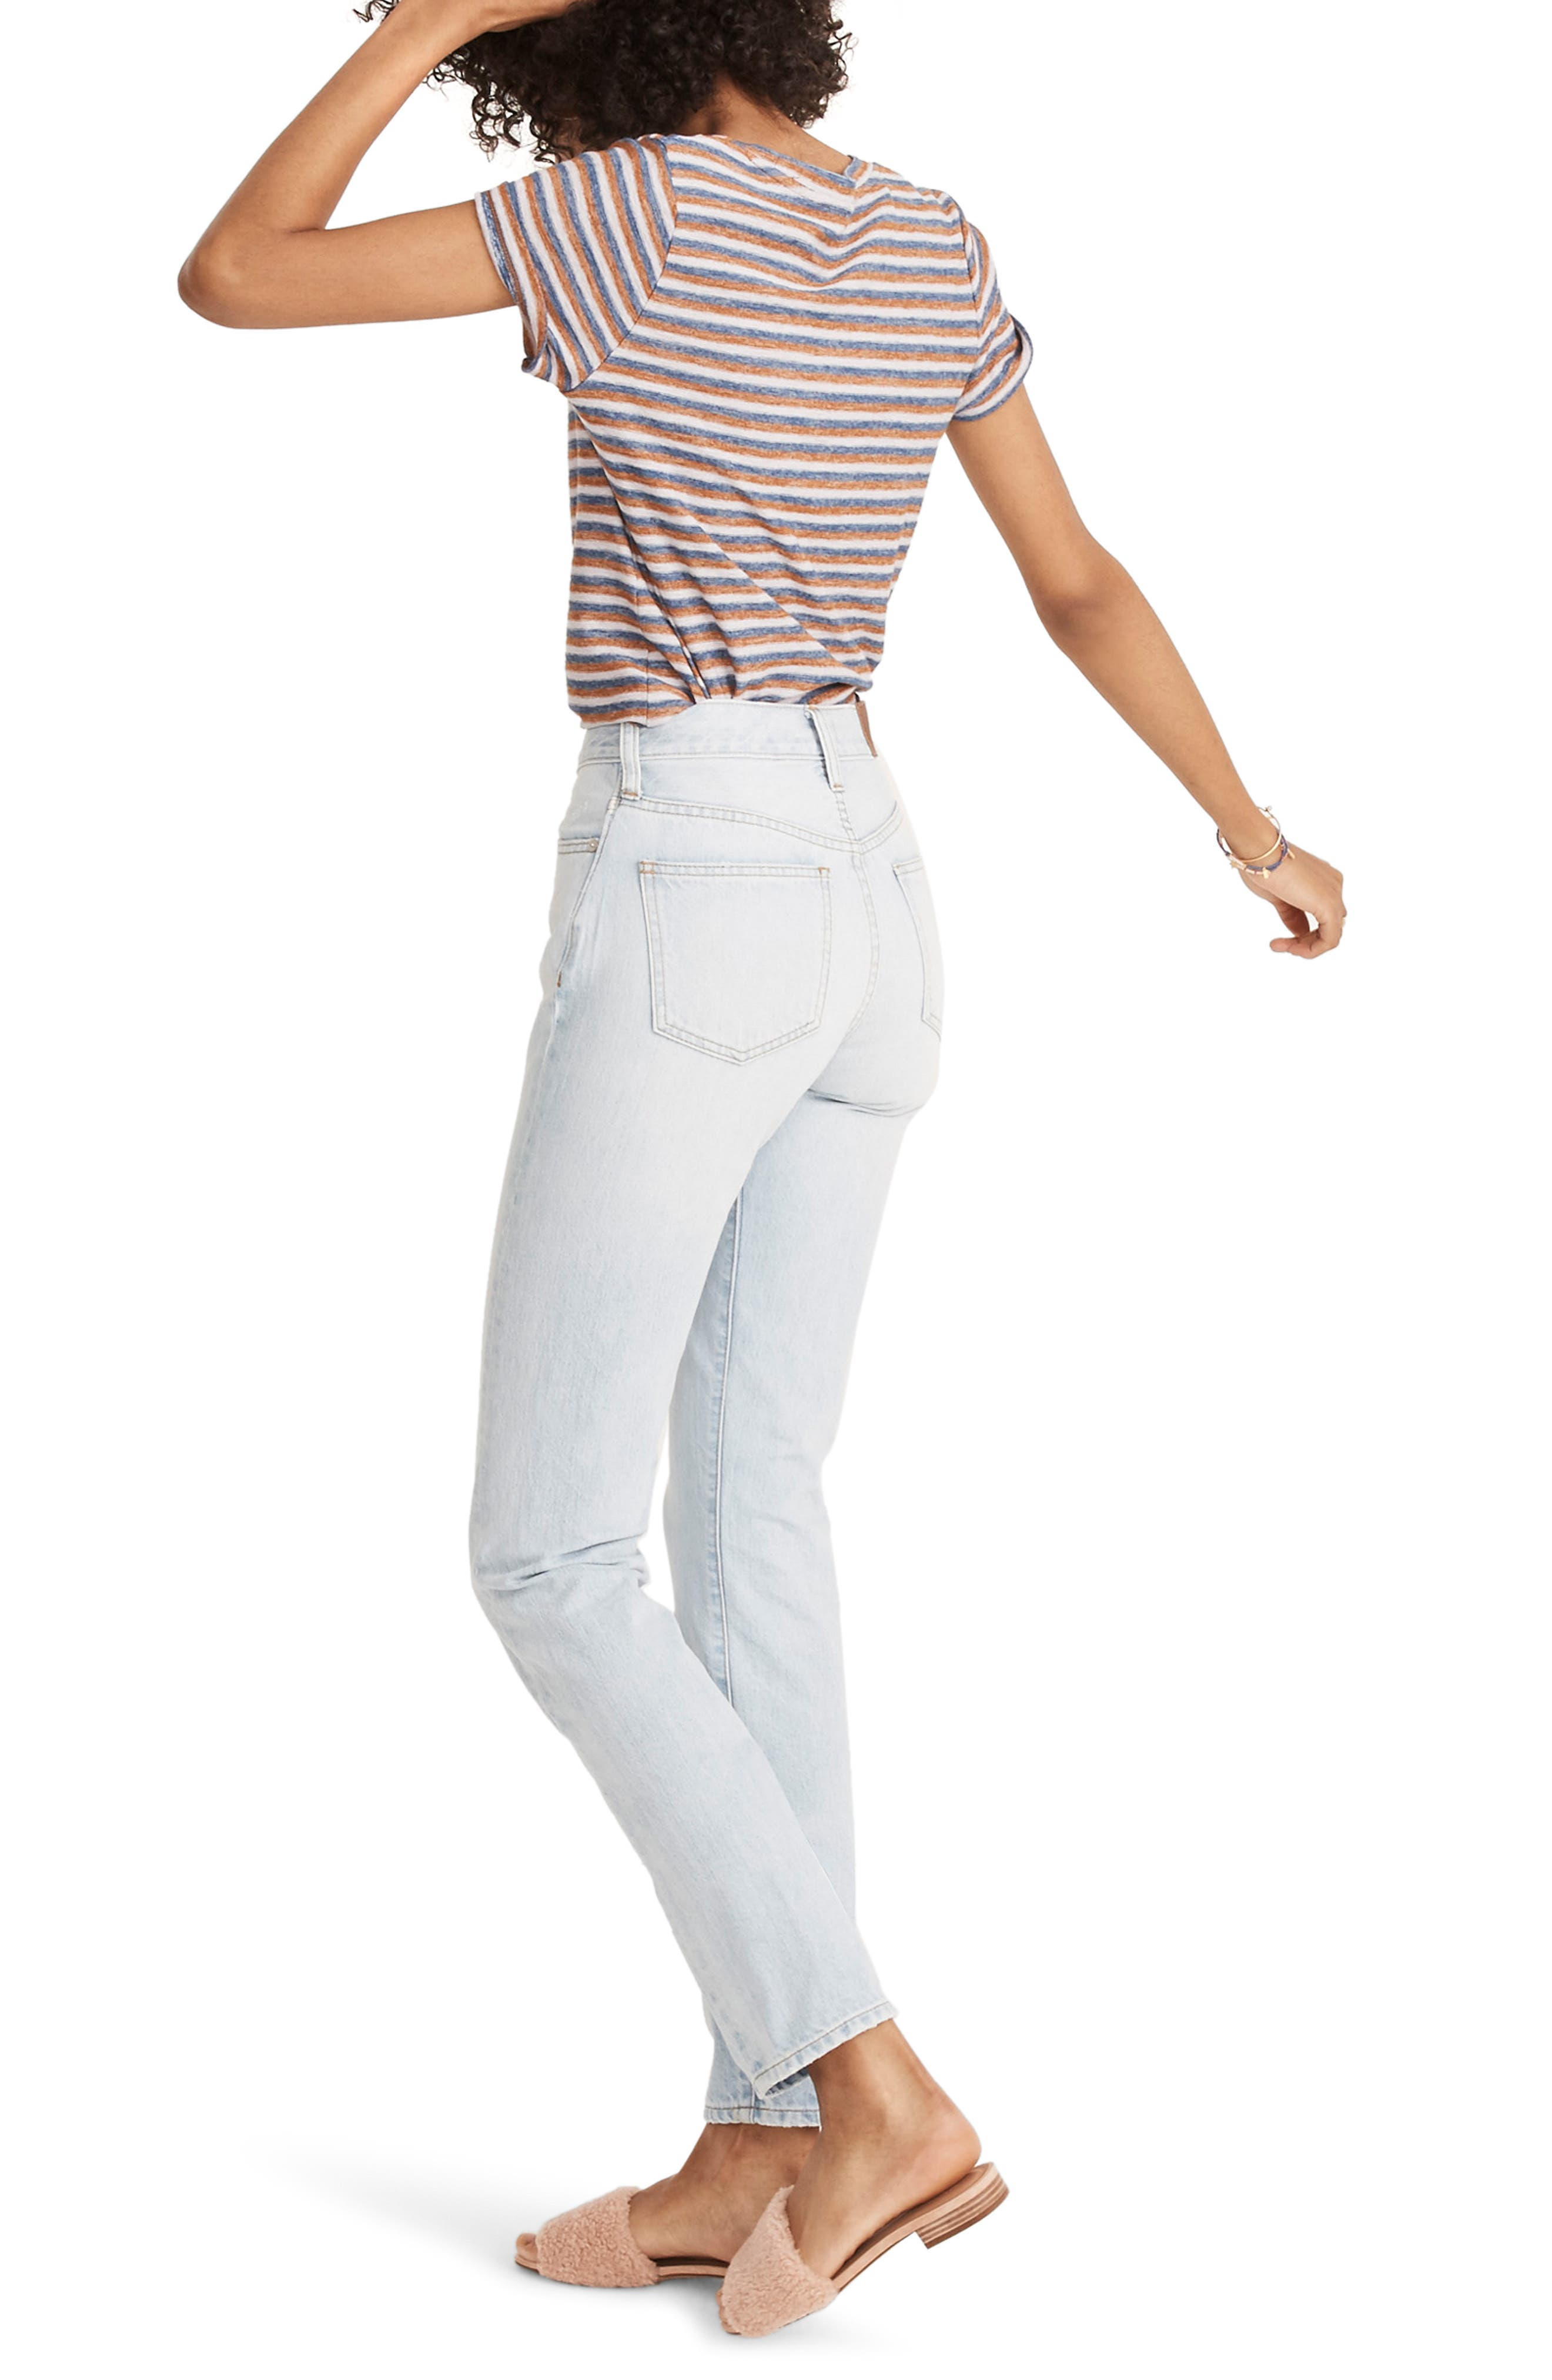 MADEWELL, 'Perfect Summer' High Rise Ankle Jeans, Alternate thumbnail 2, color, FITZGERALD WASH